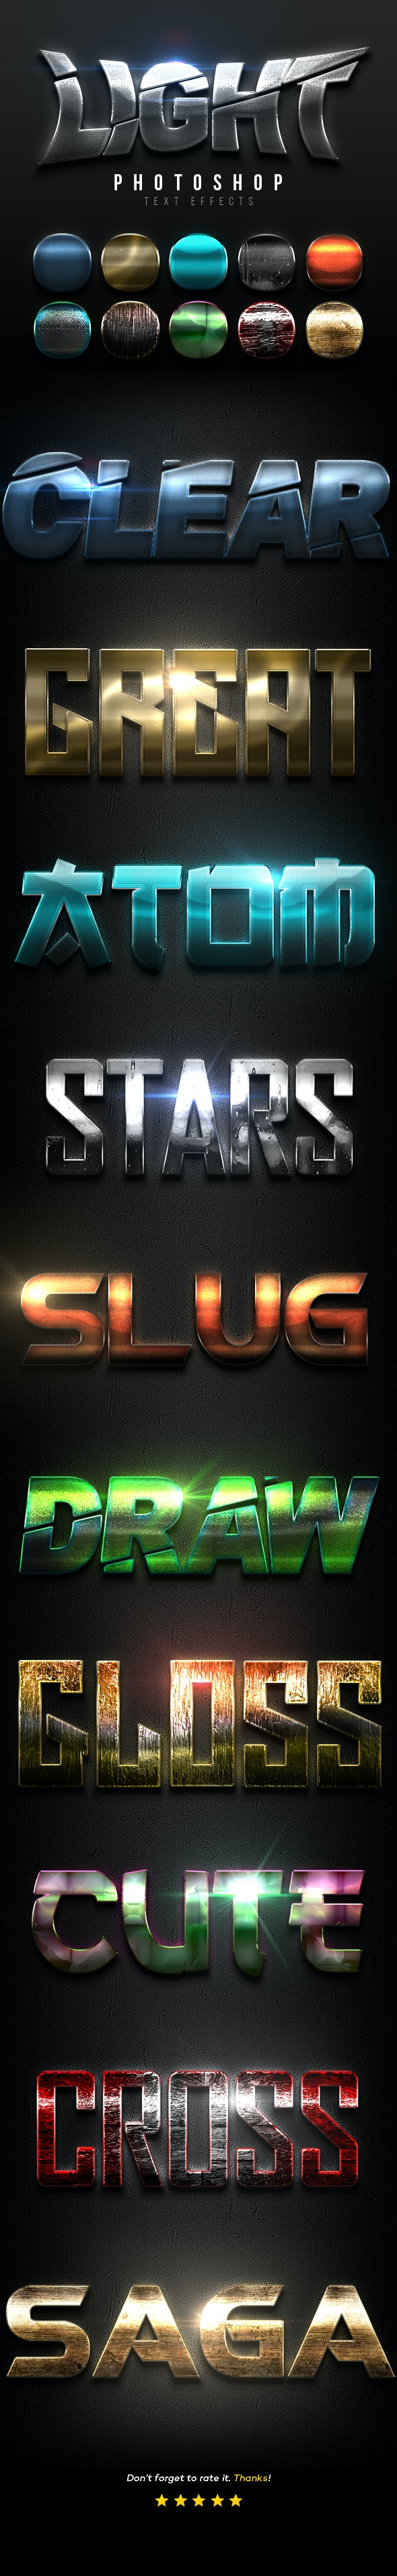 Light Text Effects Vol.10 - Text Effects Actions